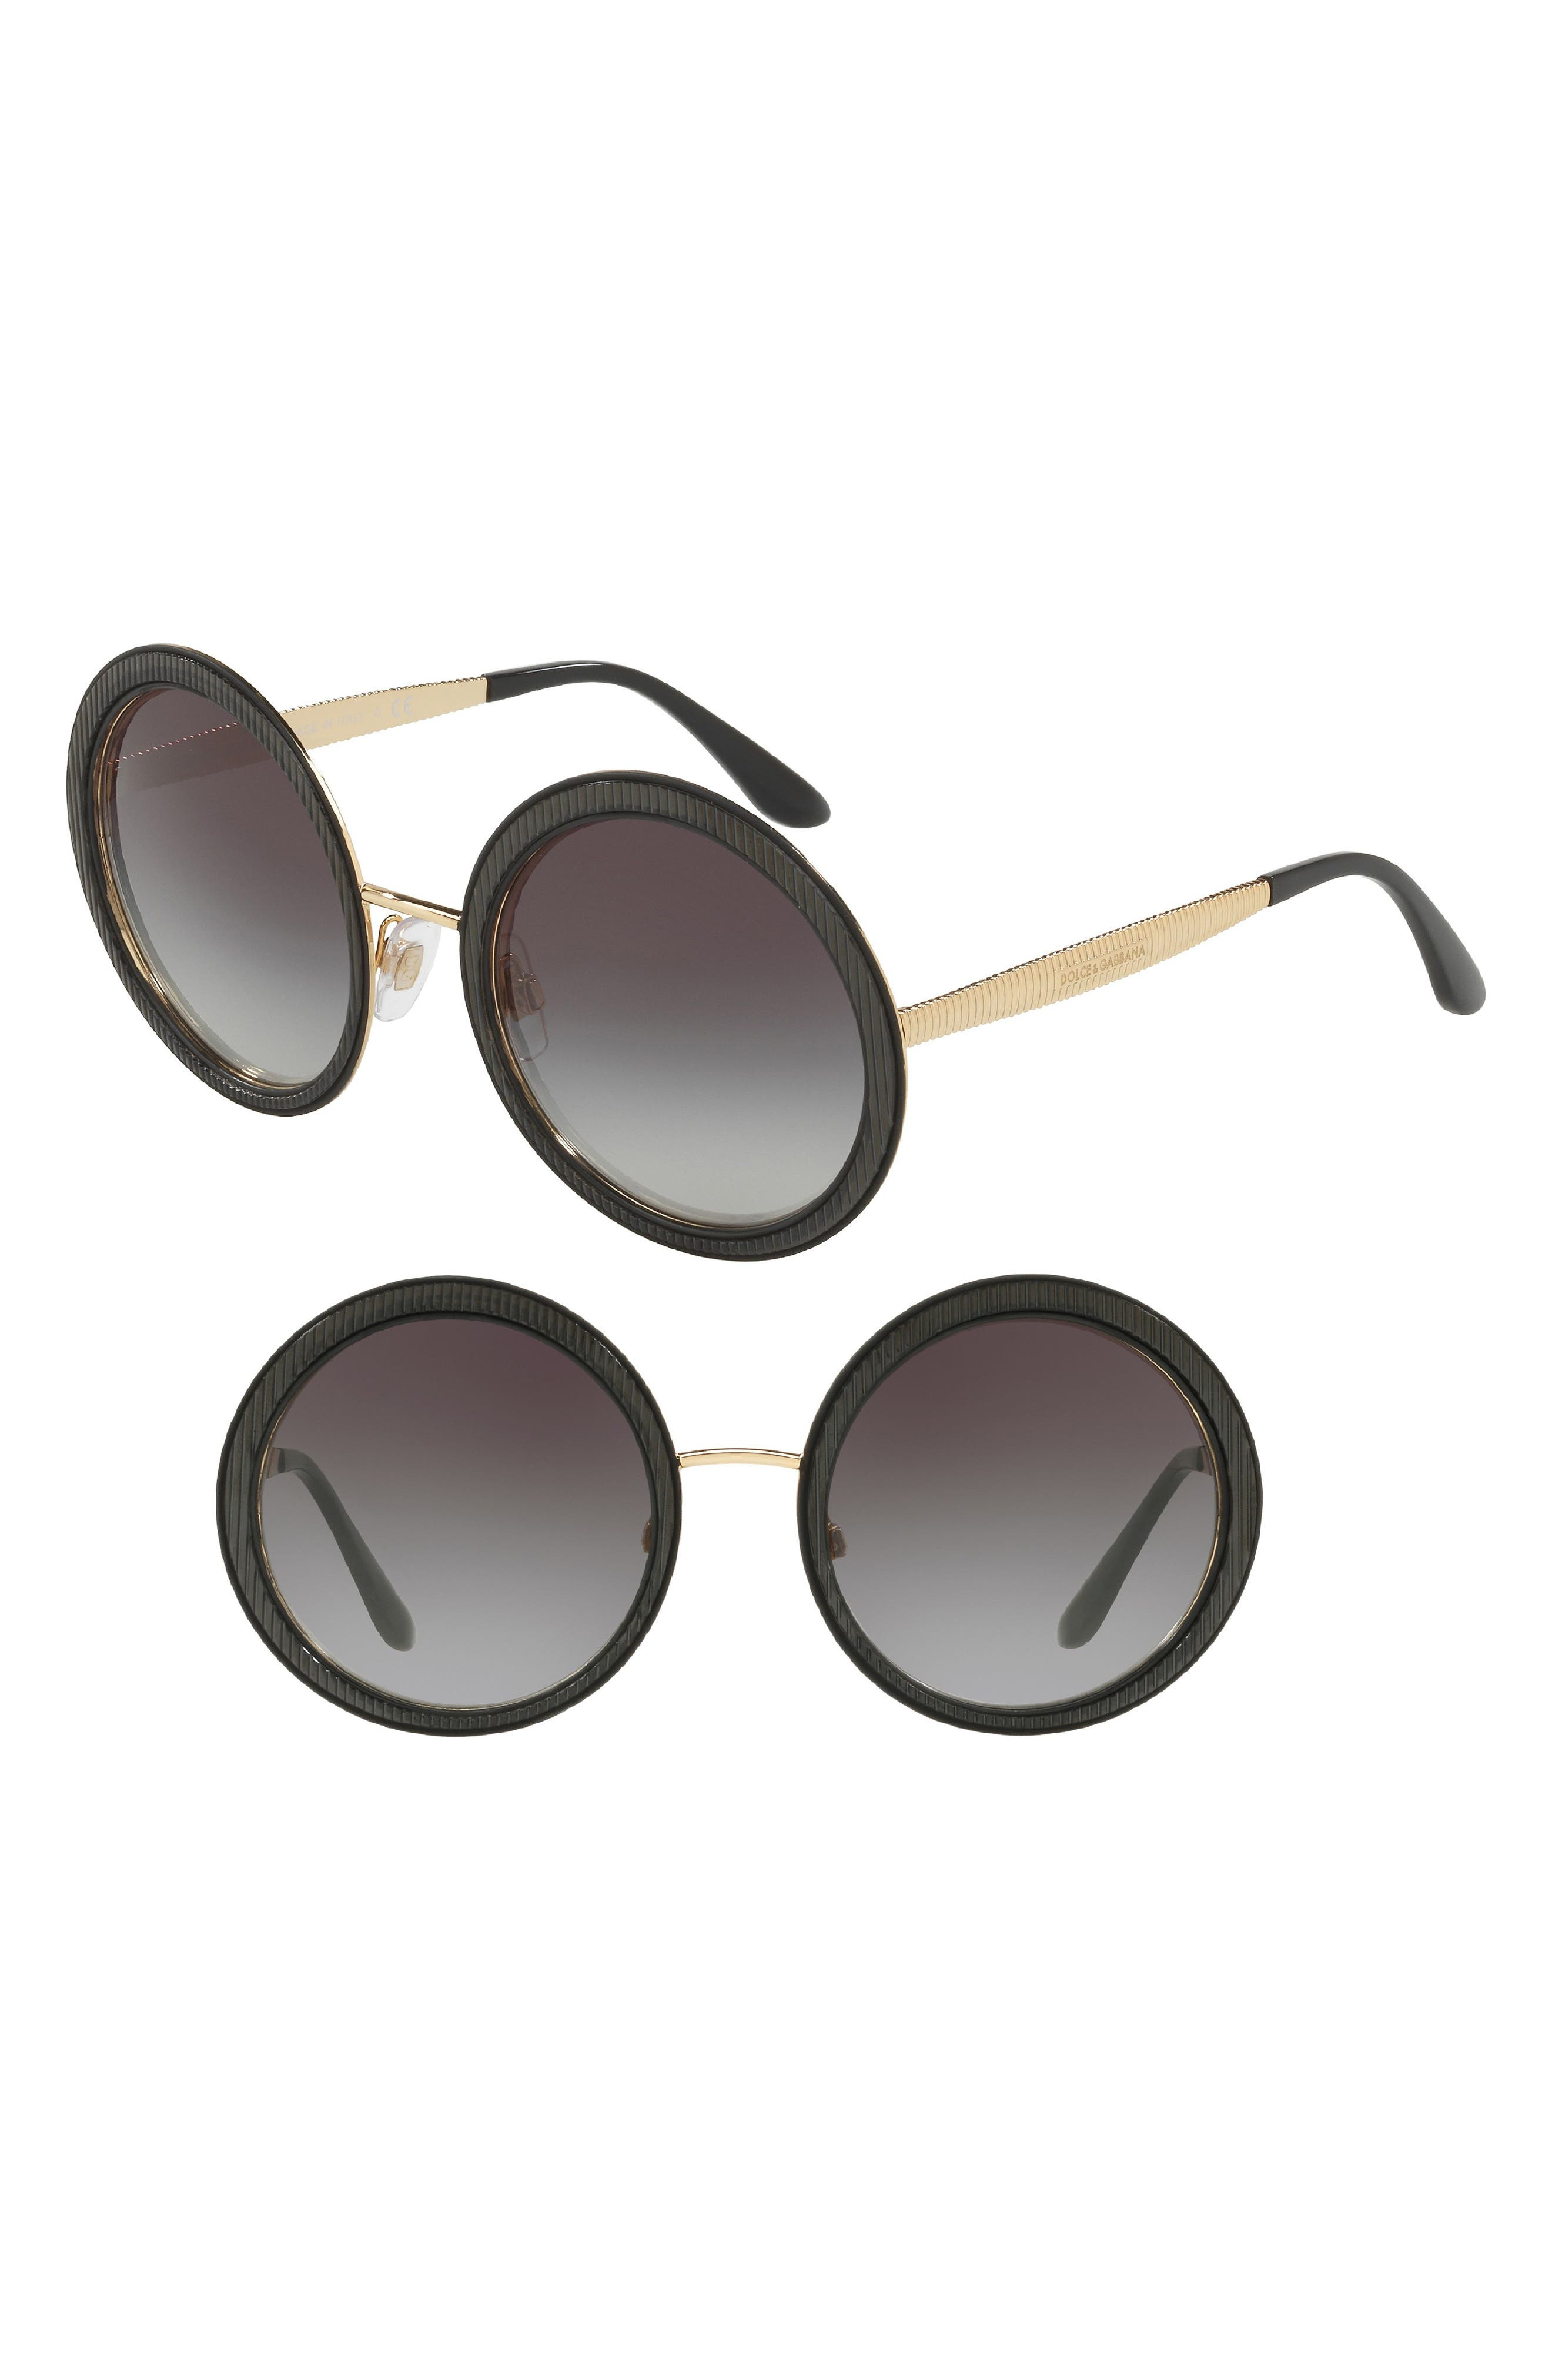 54mm Gradient Round Sunglasses,                         Main,                         color, 001